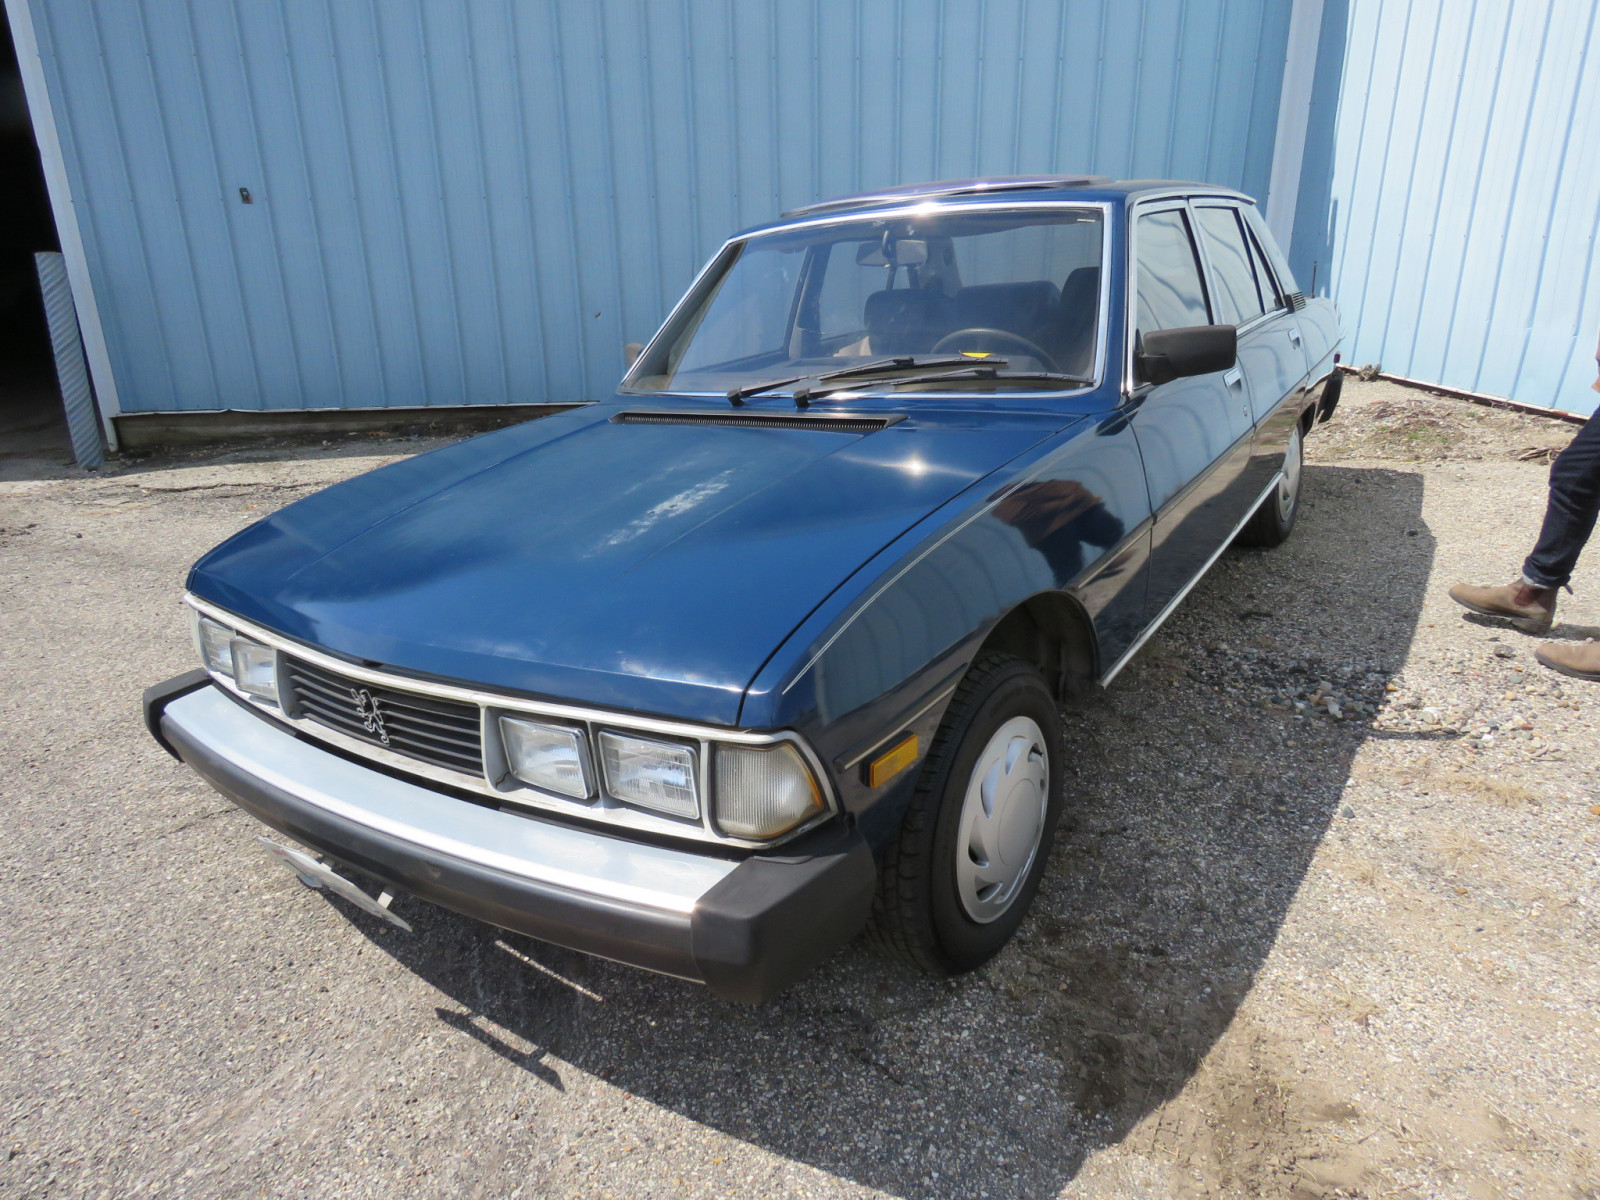 1982 Peugeot 604 Turbo Diesel 4dr Sedan - Image 1